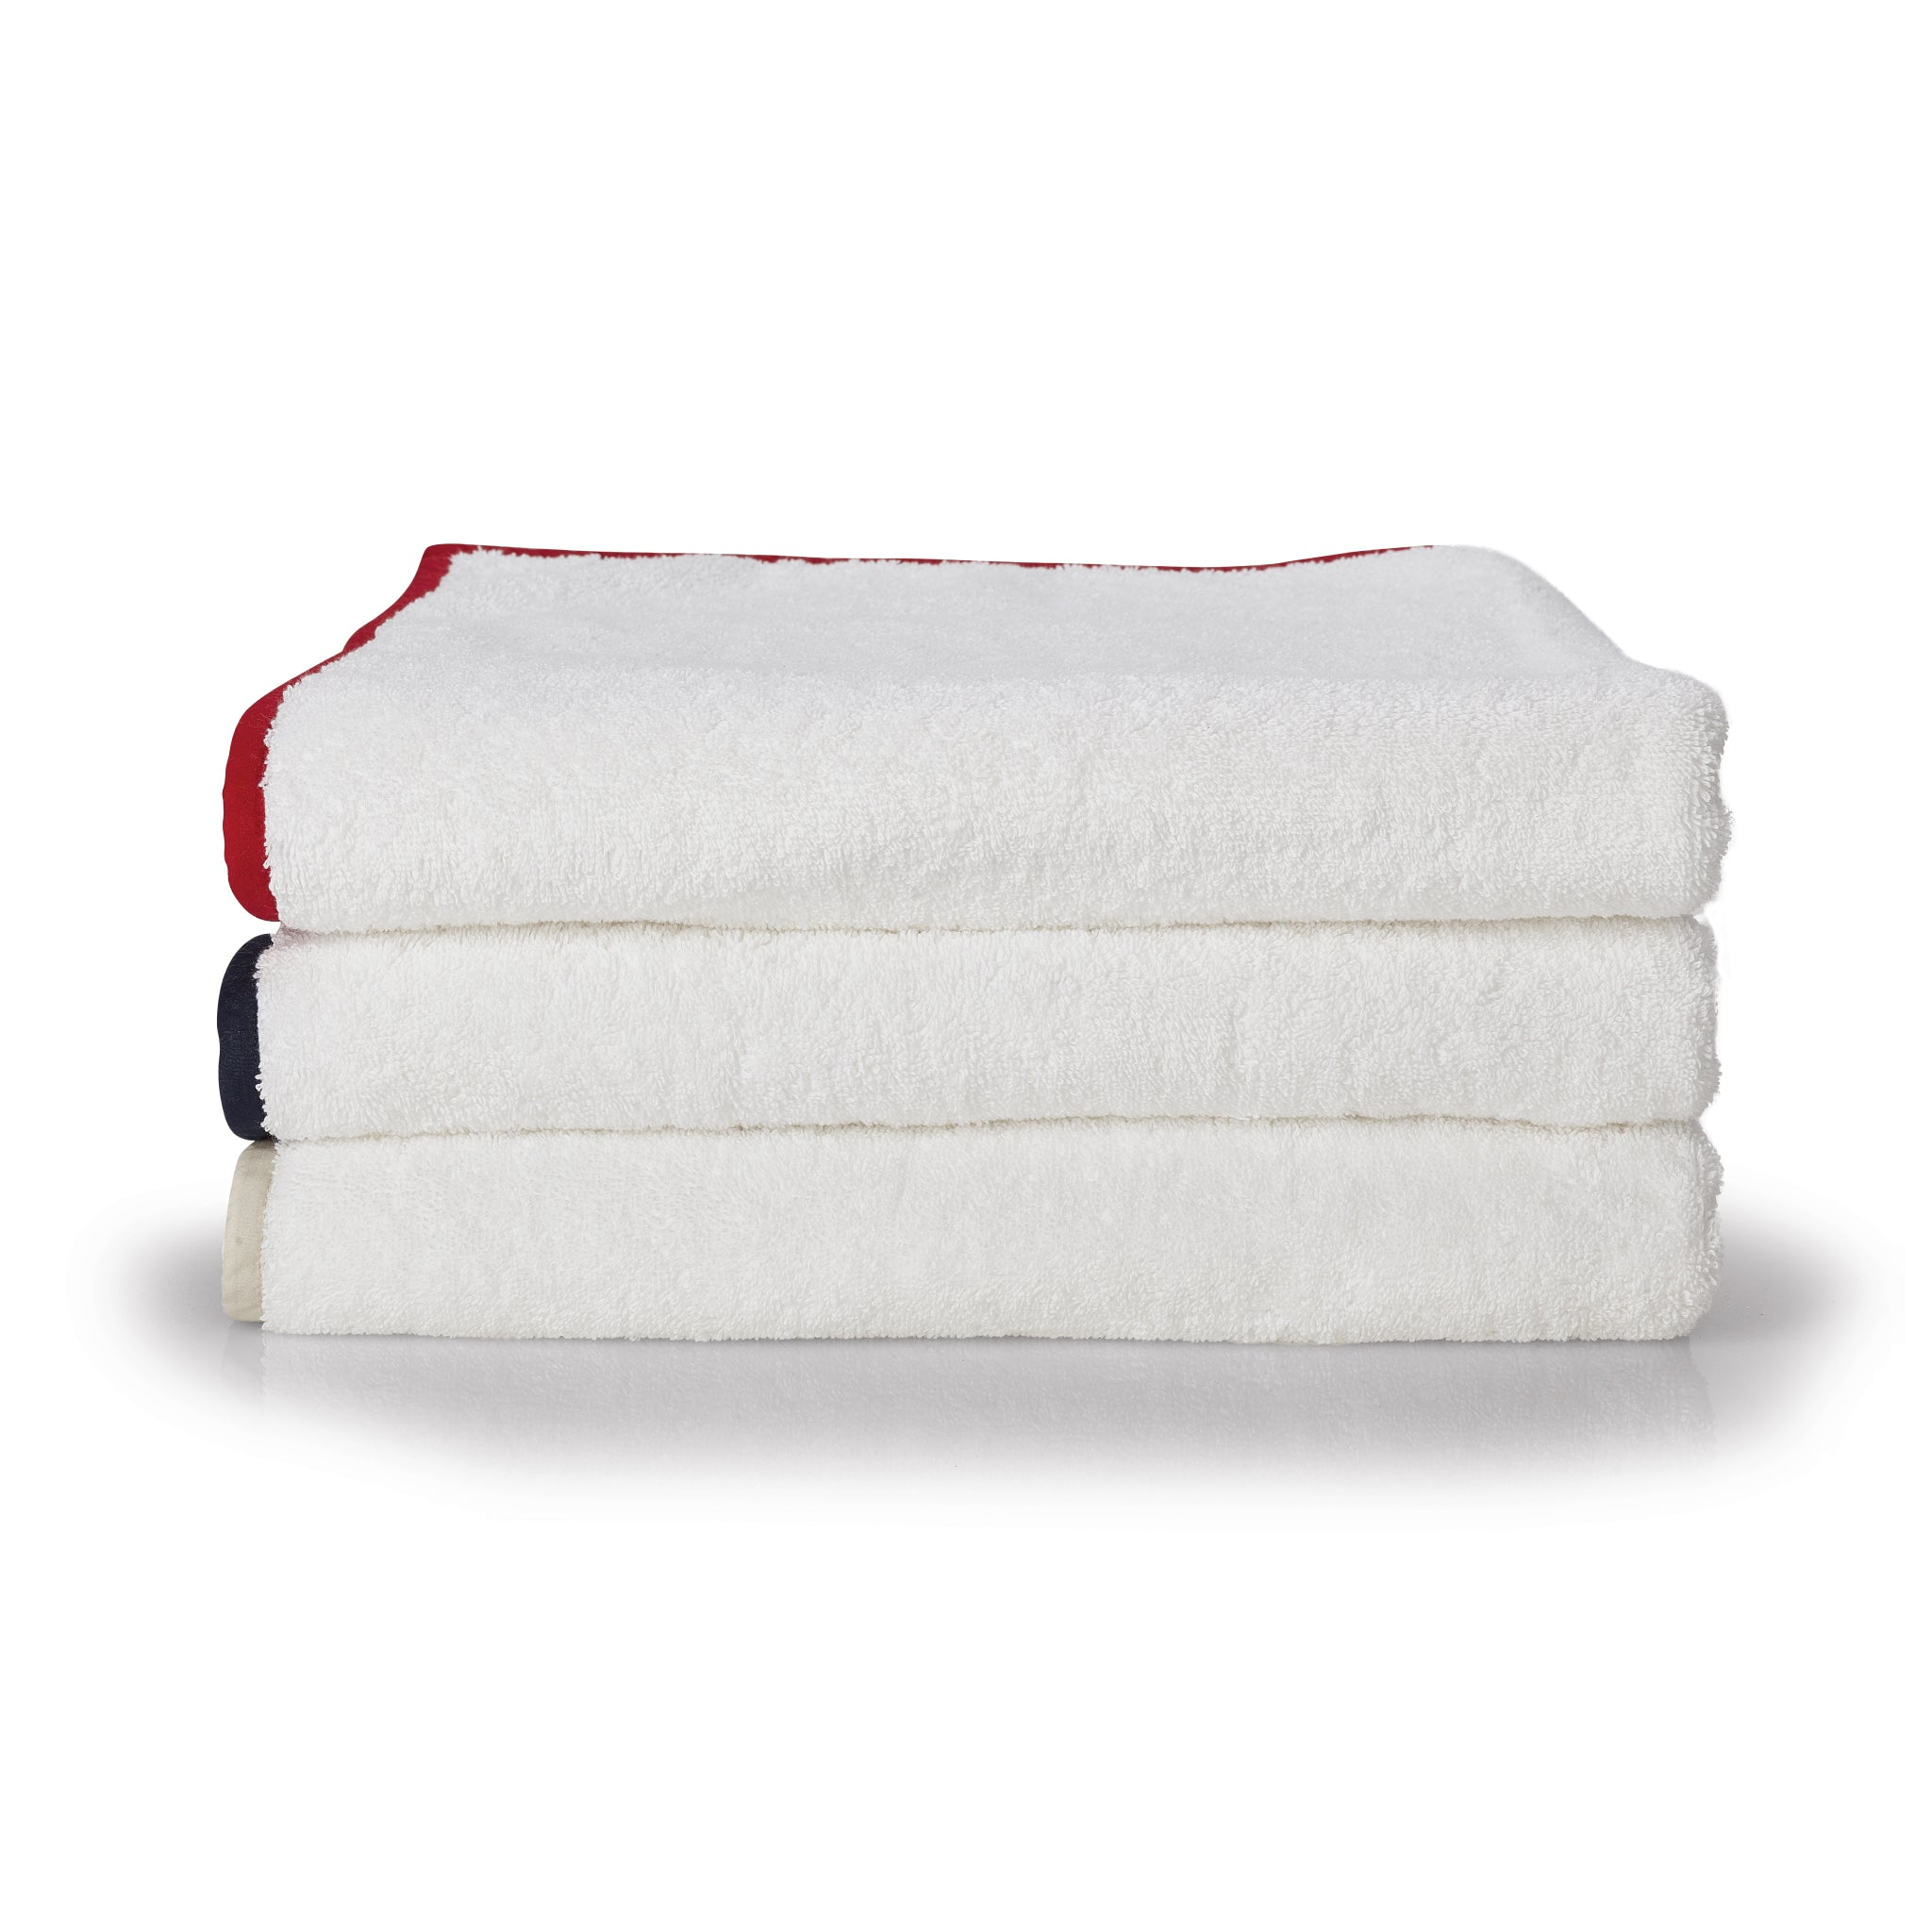 Red Organic Bath Towel